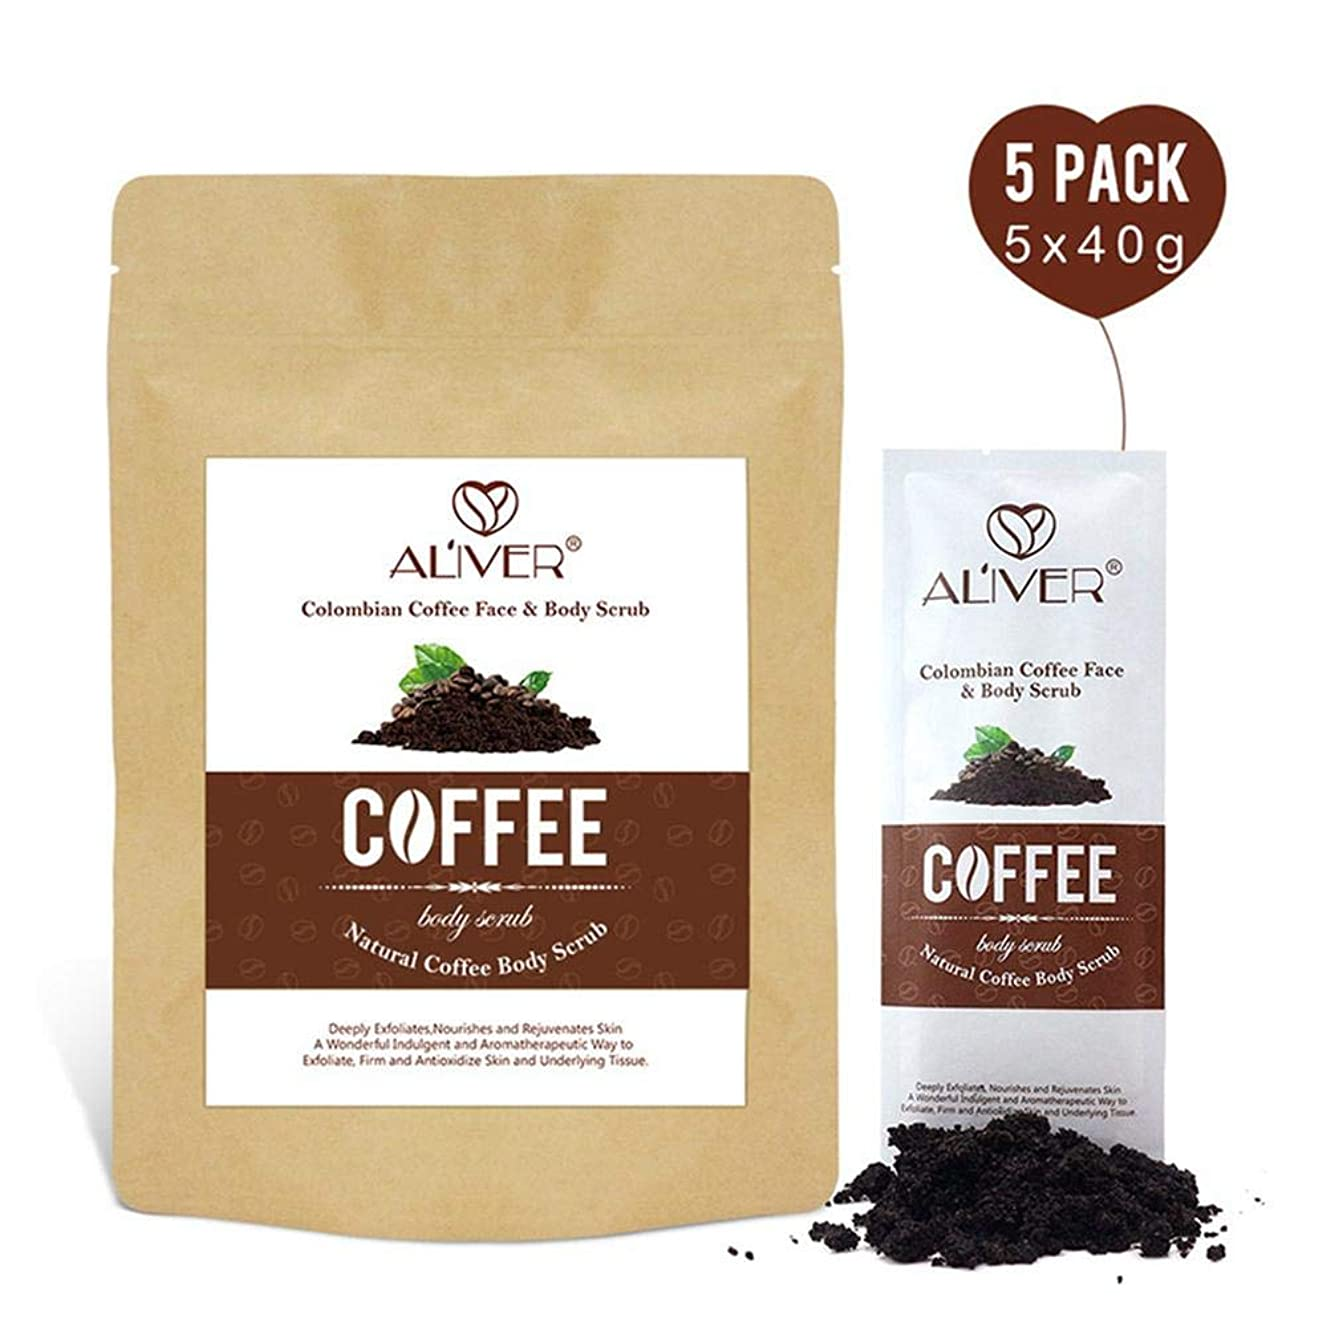 Baiwka Coffee Body Scrub(5 PACK), 100% Finest Pure Colombian Coffee Beans Blended With Natural Essential Oils, Organic Coffee Scrub For Face & Body Exfoliator Cellulite Eczema Reduction